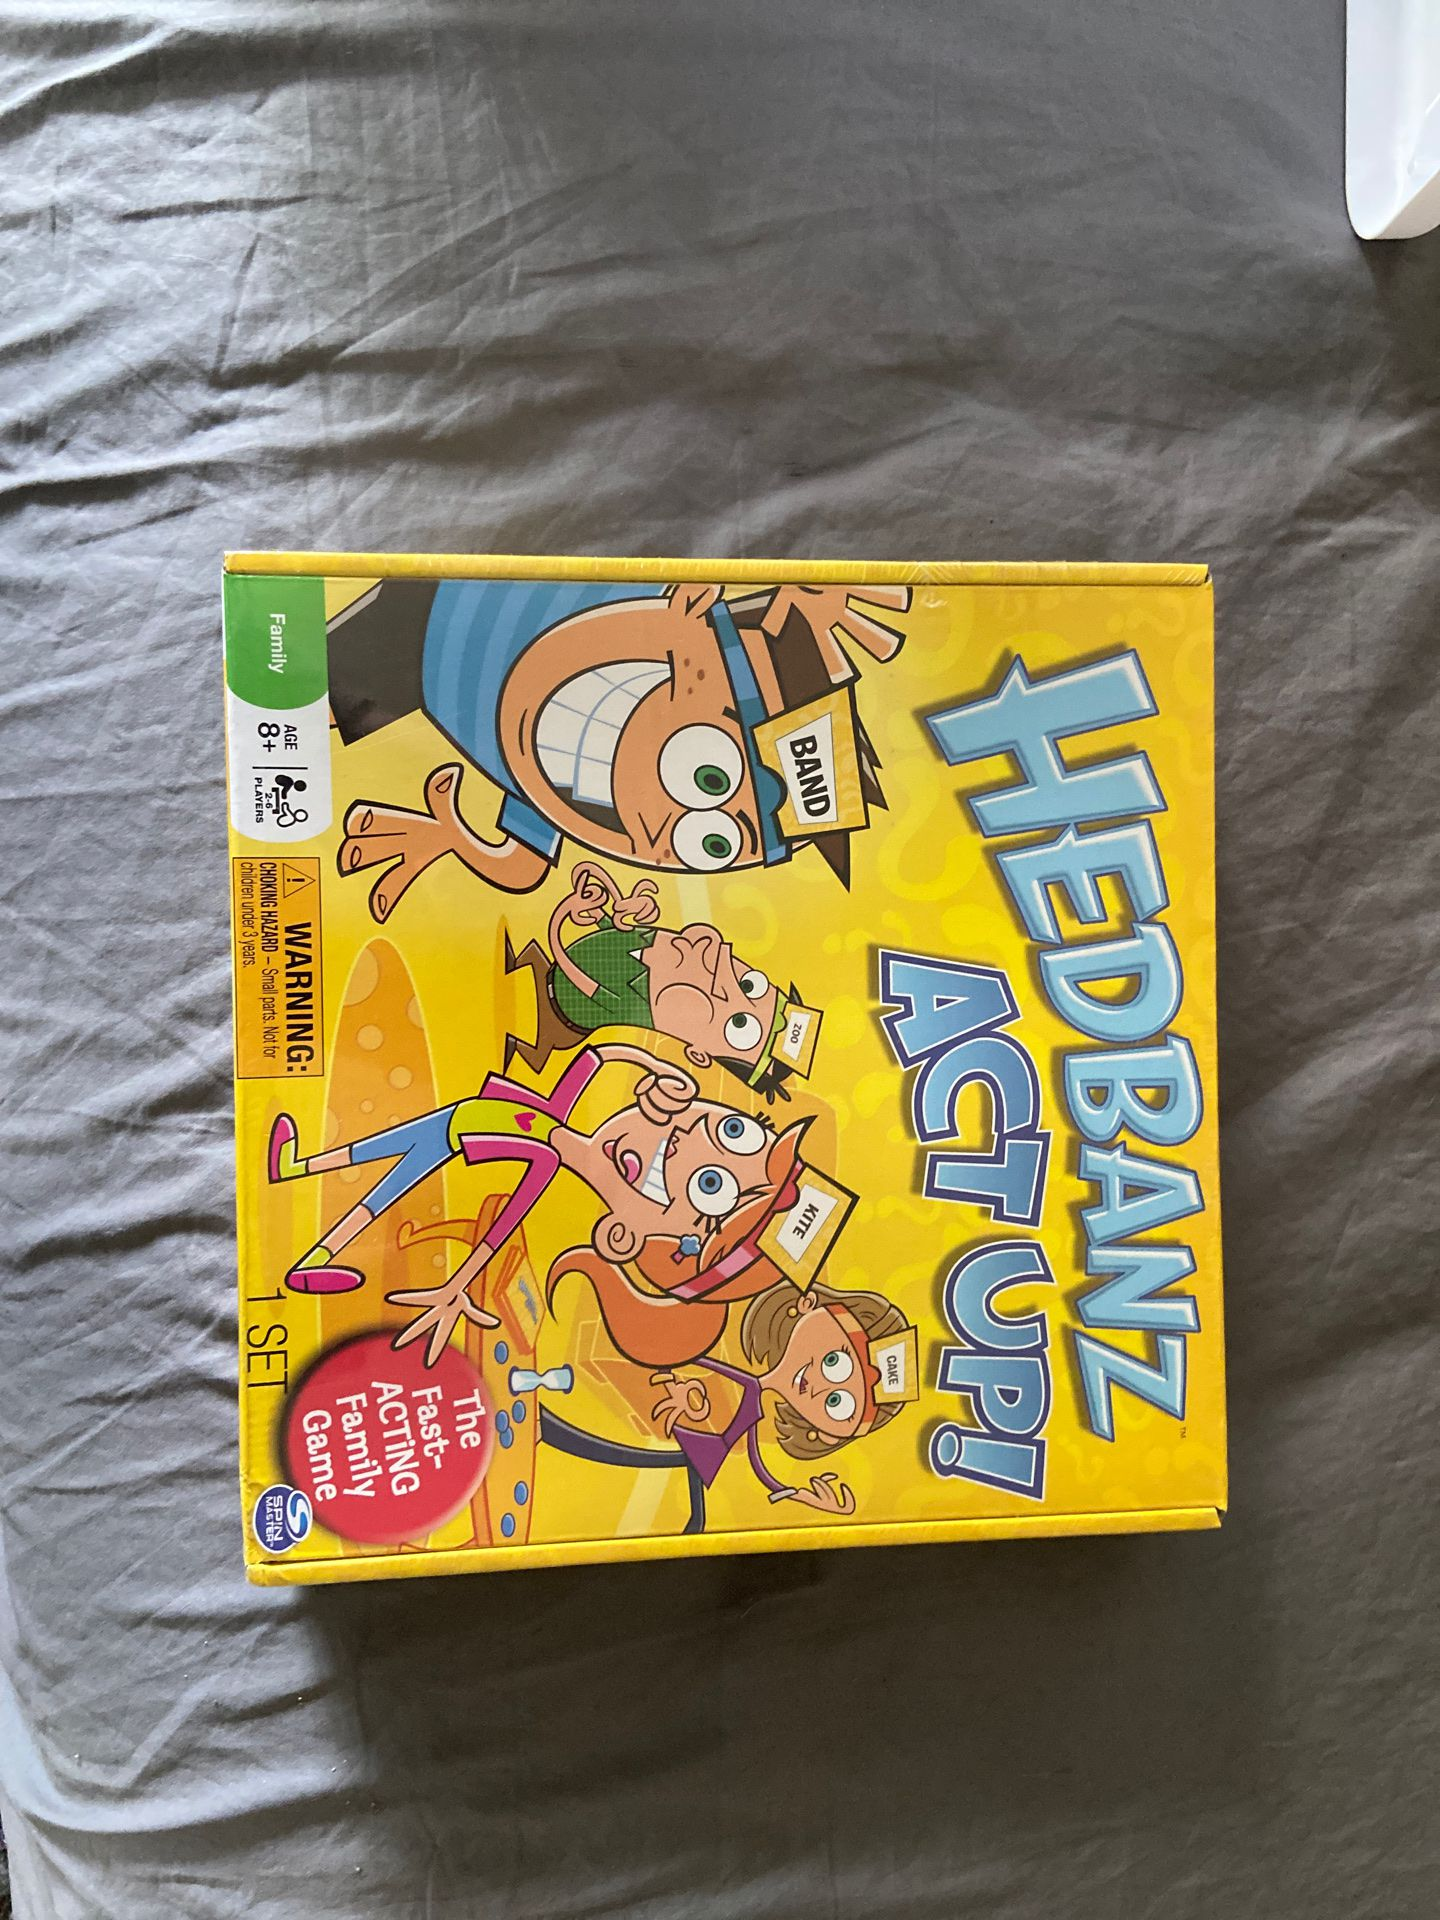 Hedbanz act up board game